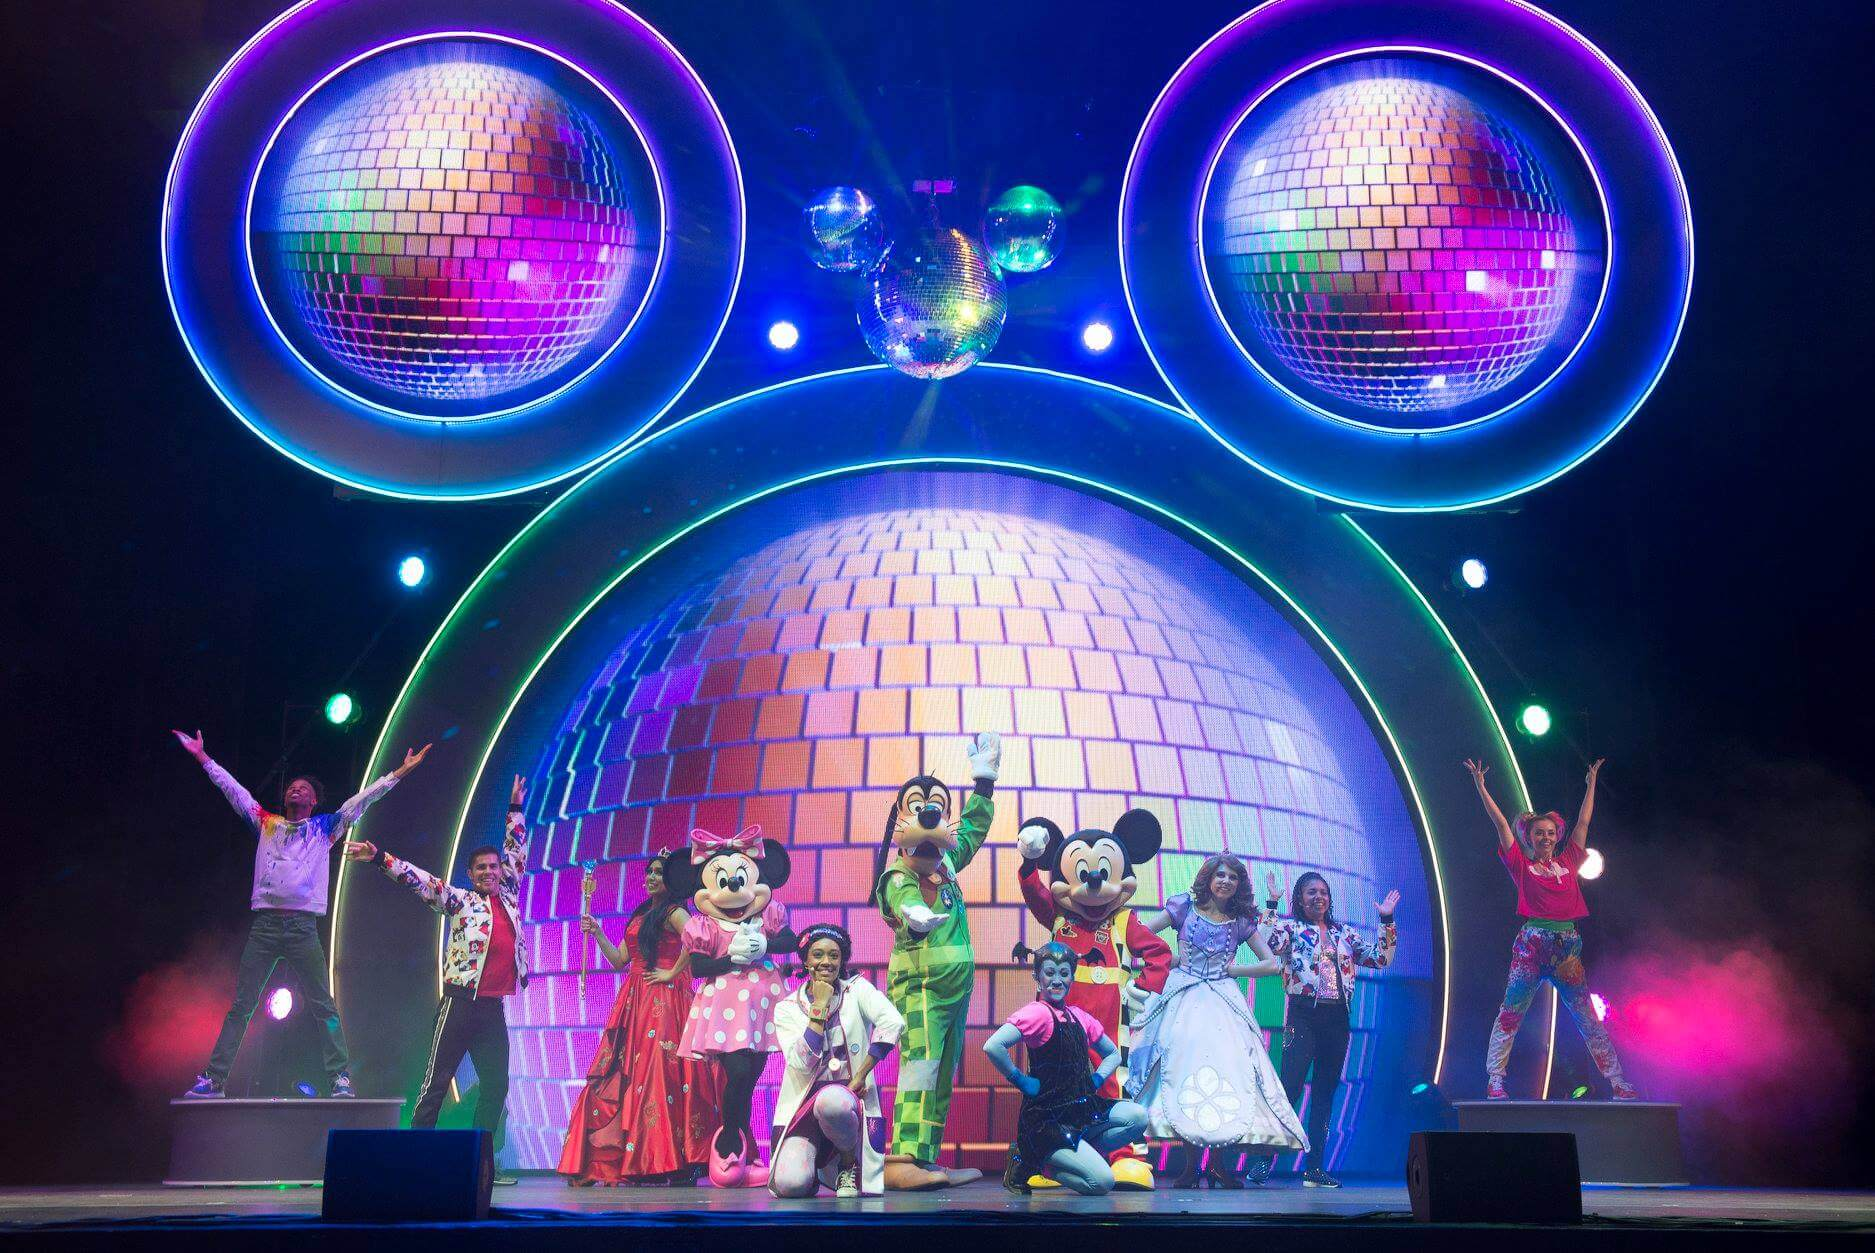 https://www.facebook.com/DisneyJuniorTour/photos/a.171210280126526/372707479976804/?type=3&theater